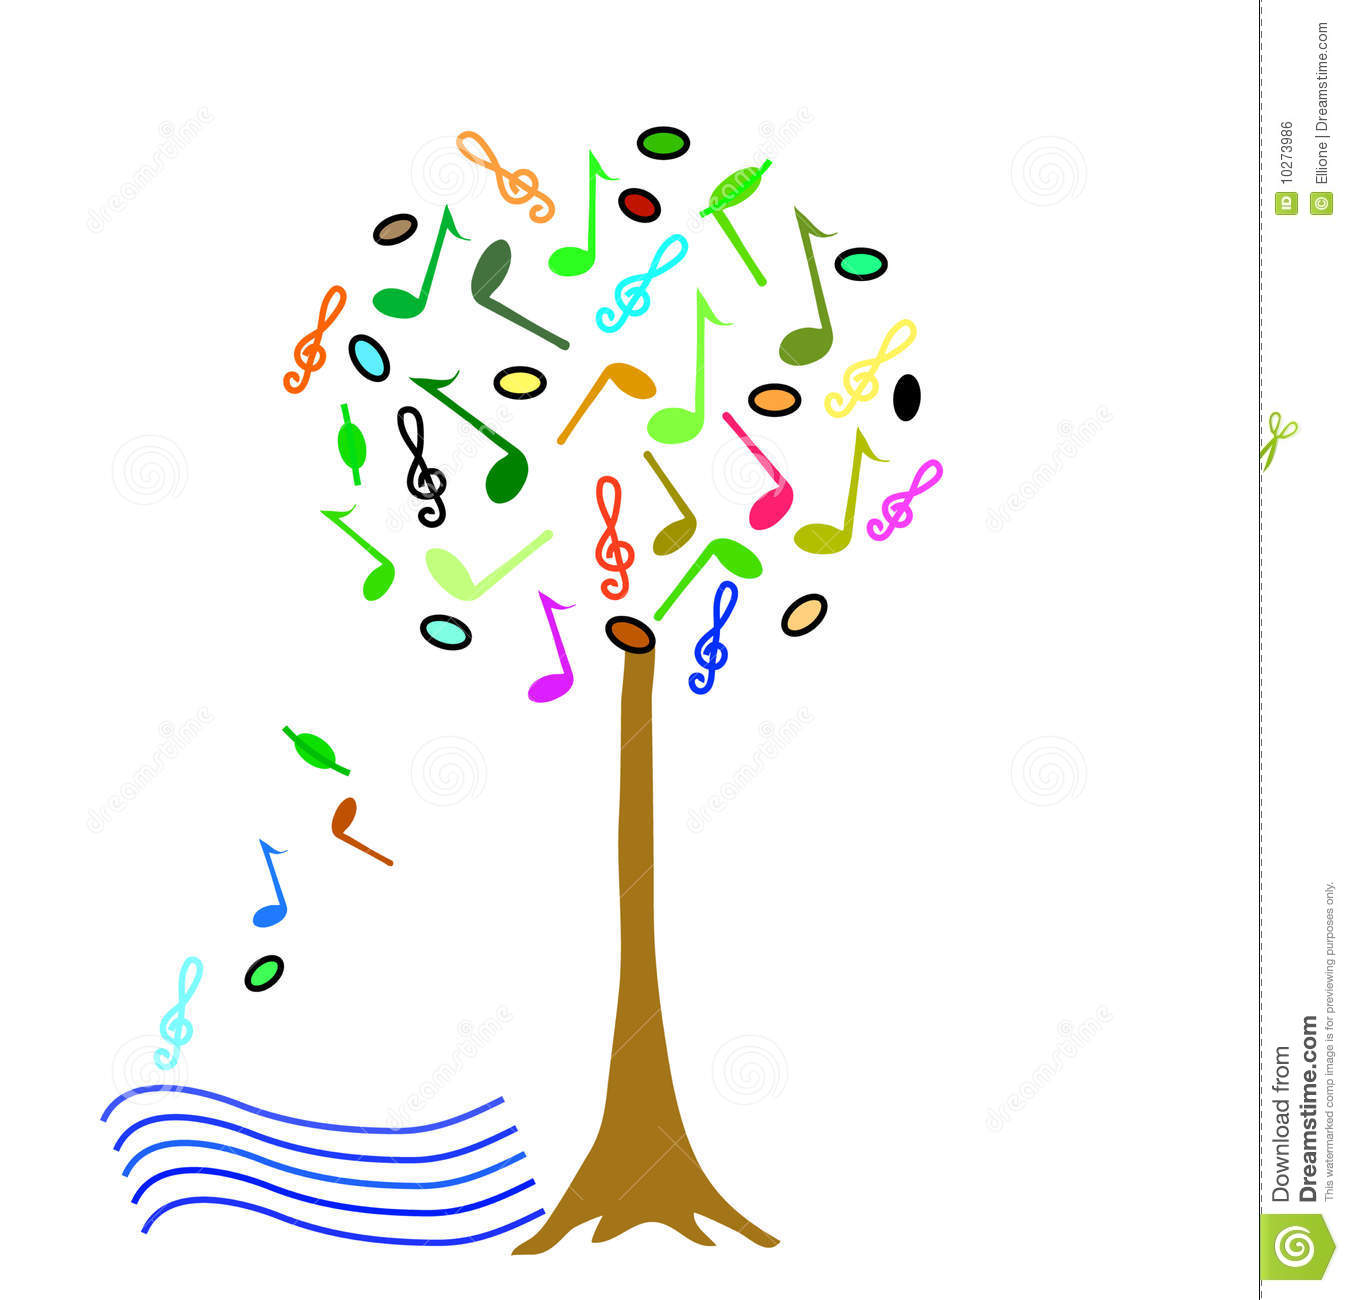 Royalty Free Stock Image Colorful Music Tree Image10273986 on Conservatory Design Plans